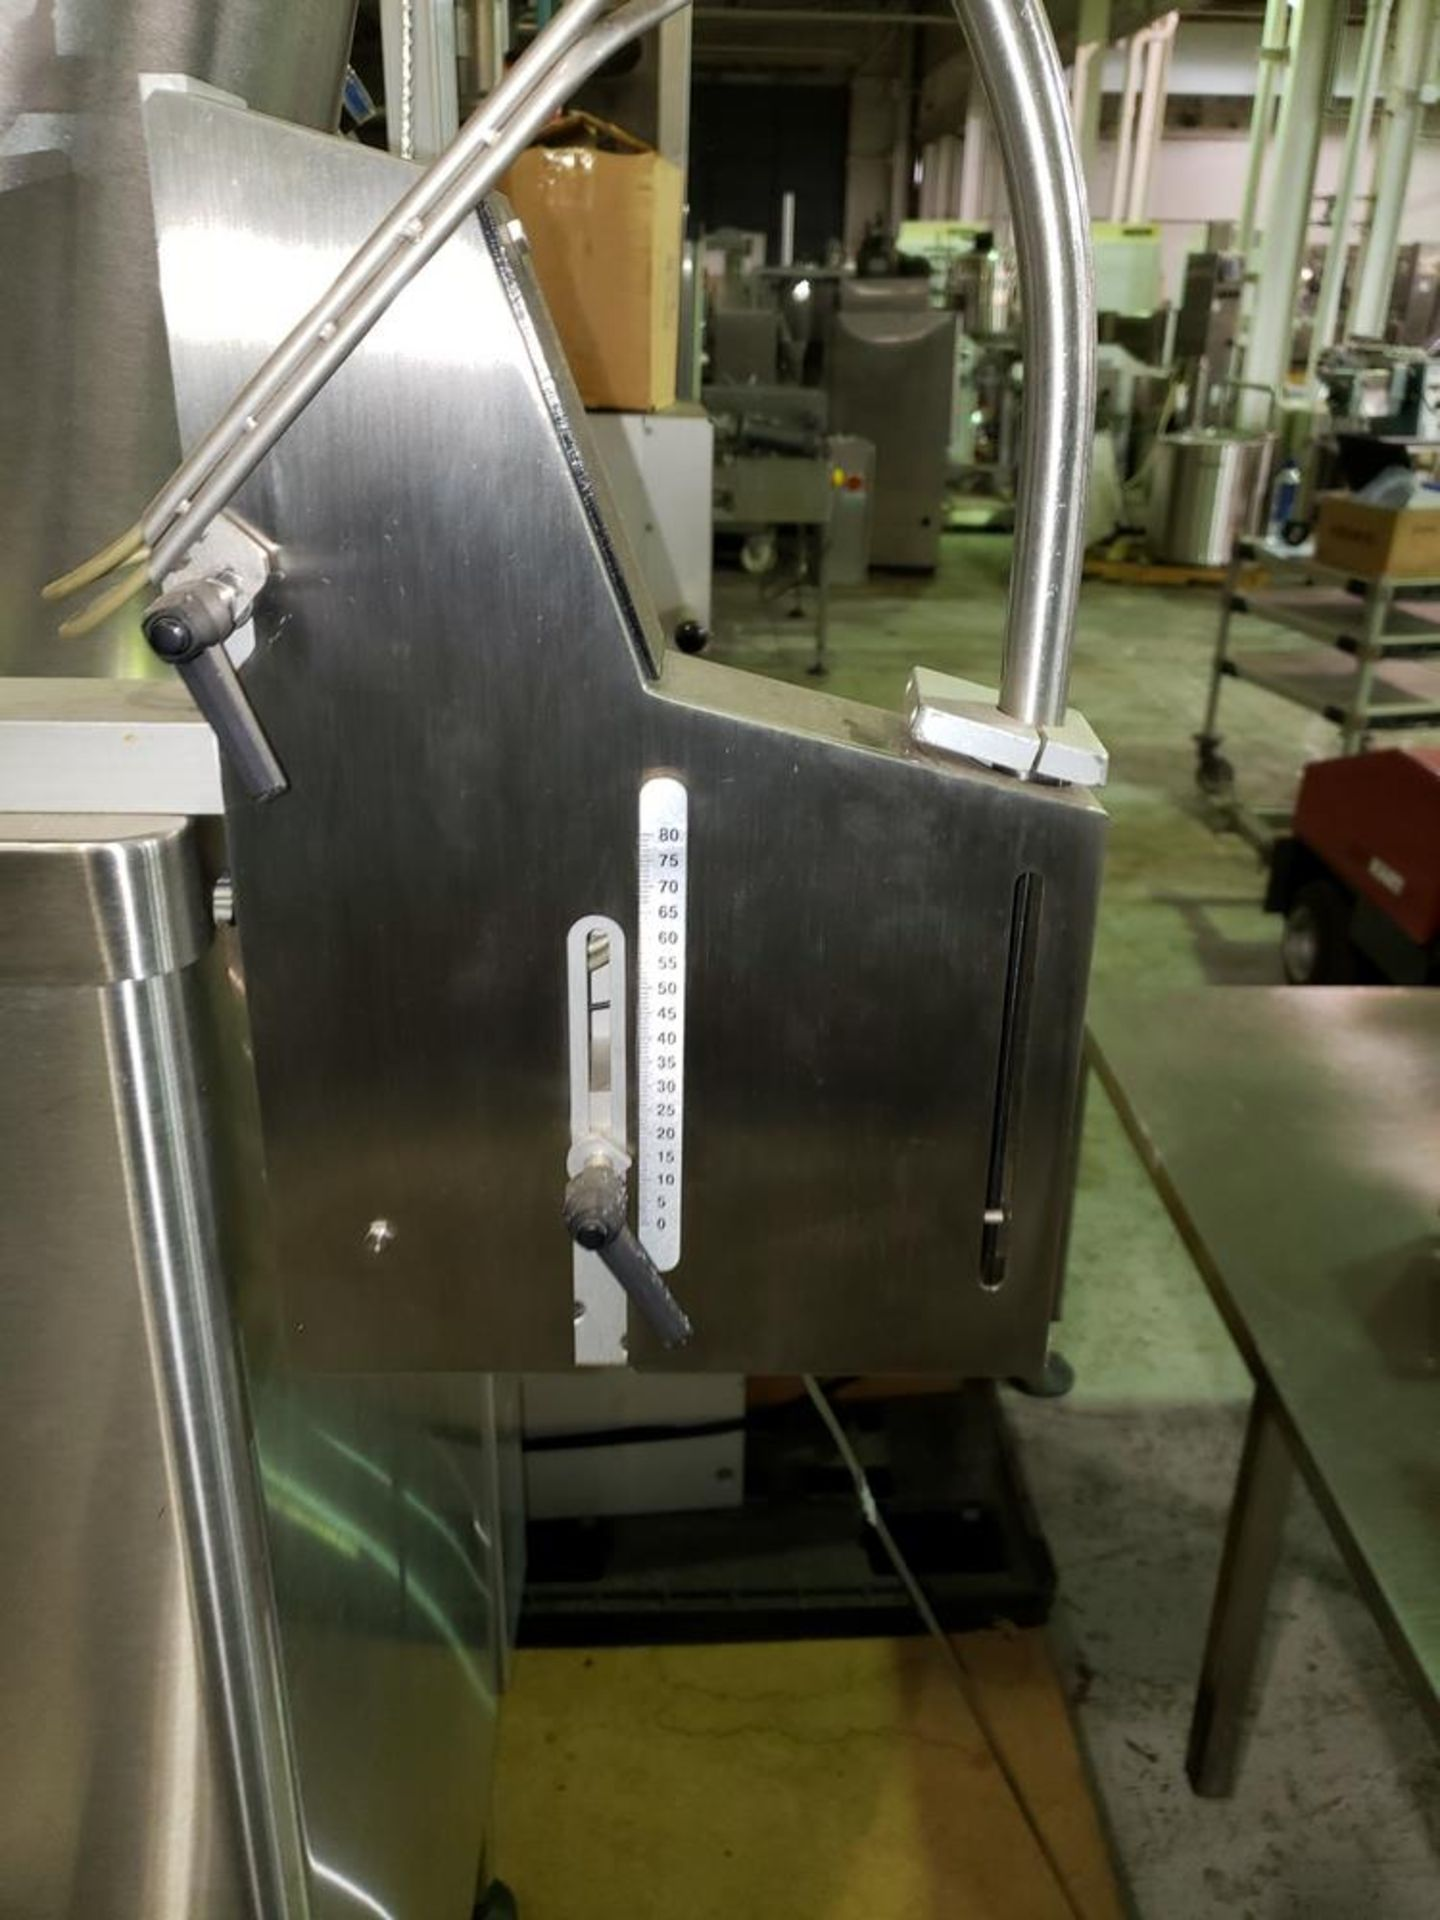 Lot 26 - DT Kalish desiccant feeder, model 8331,designed for barrel canisters, with rotary bowl feeder and